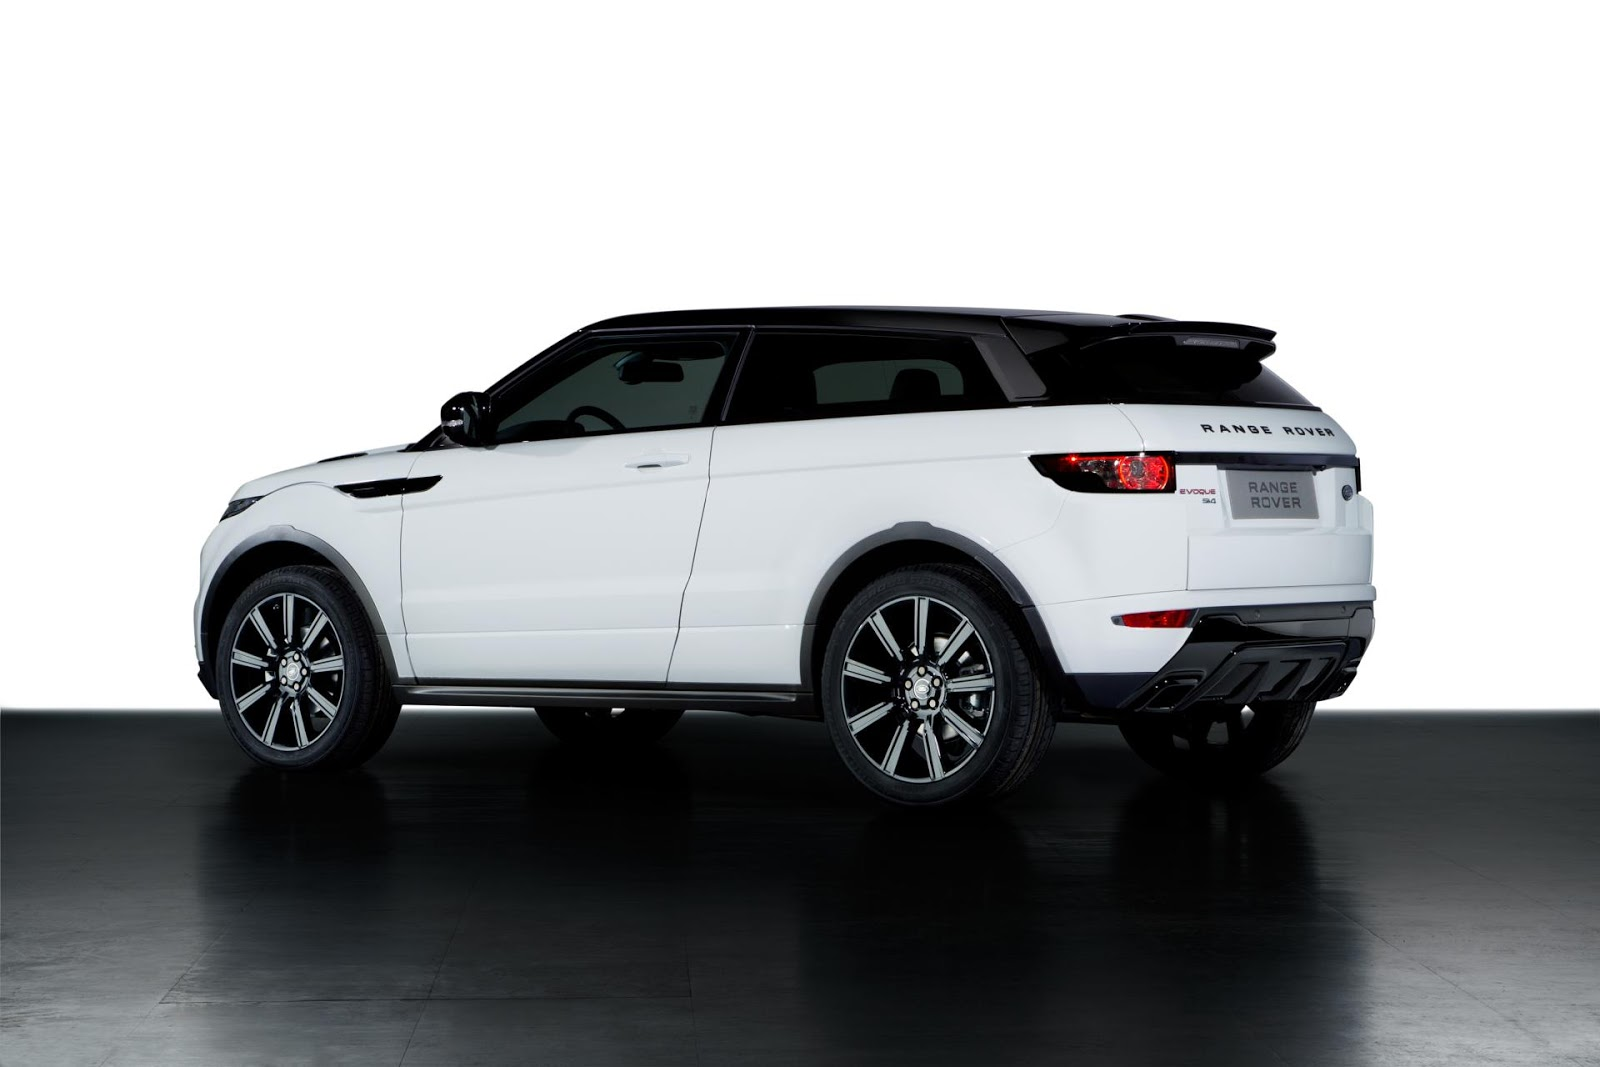 range rover evoque black design 2013 hottest car. Black Bedroom Furniture Sets. Home Design Ideas